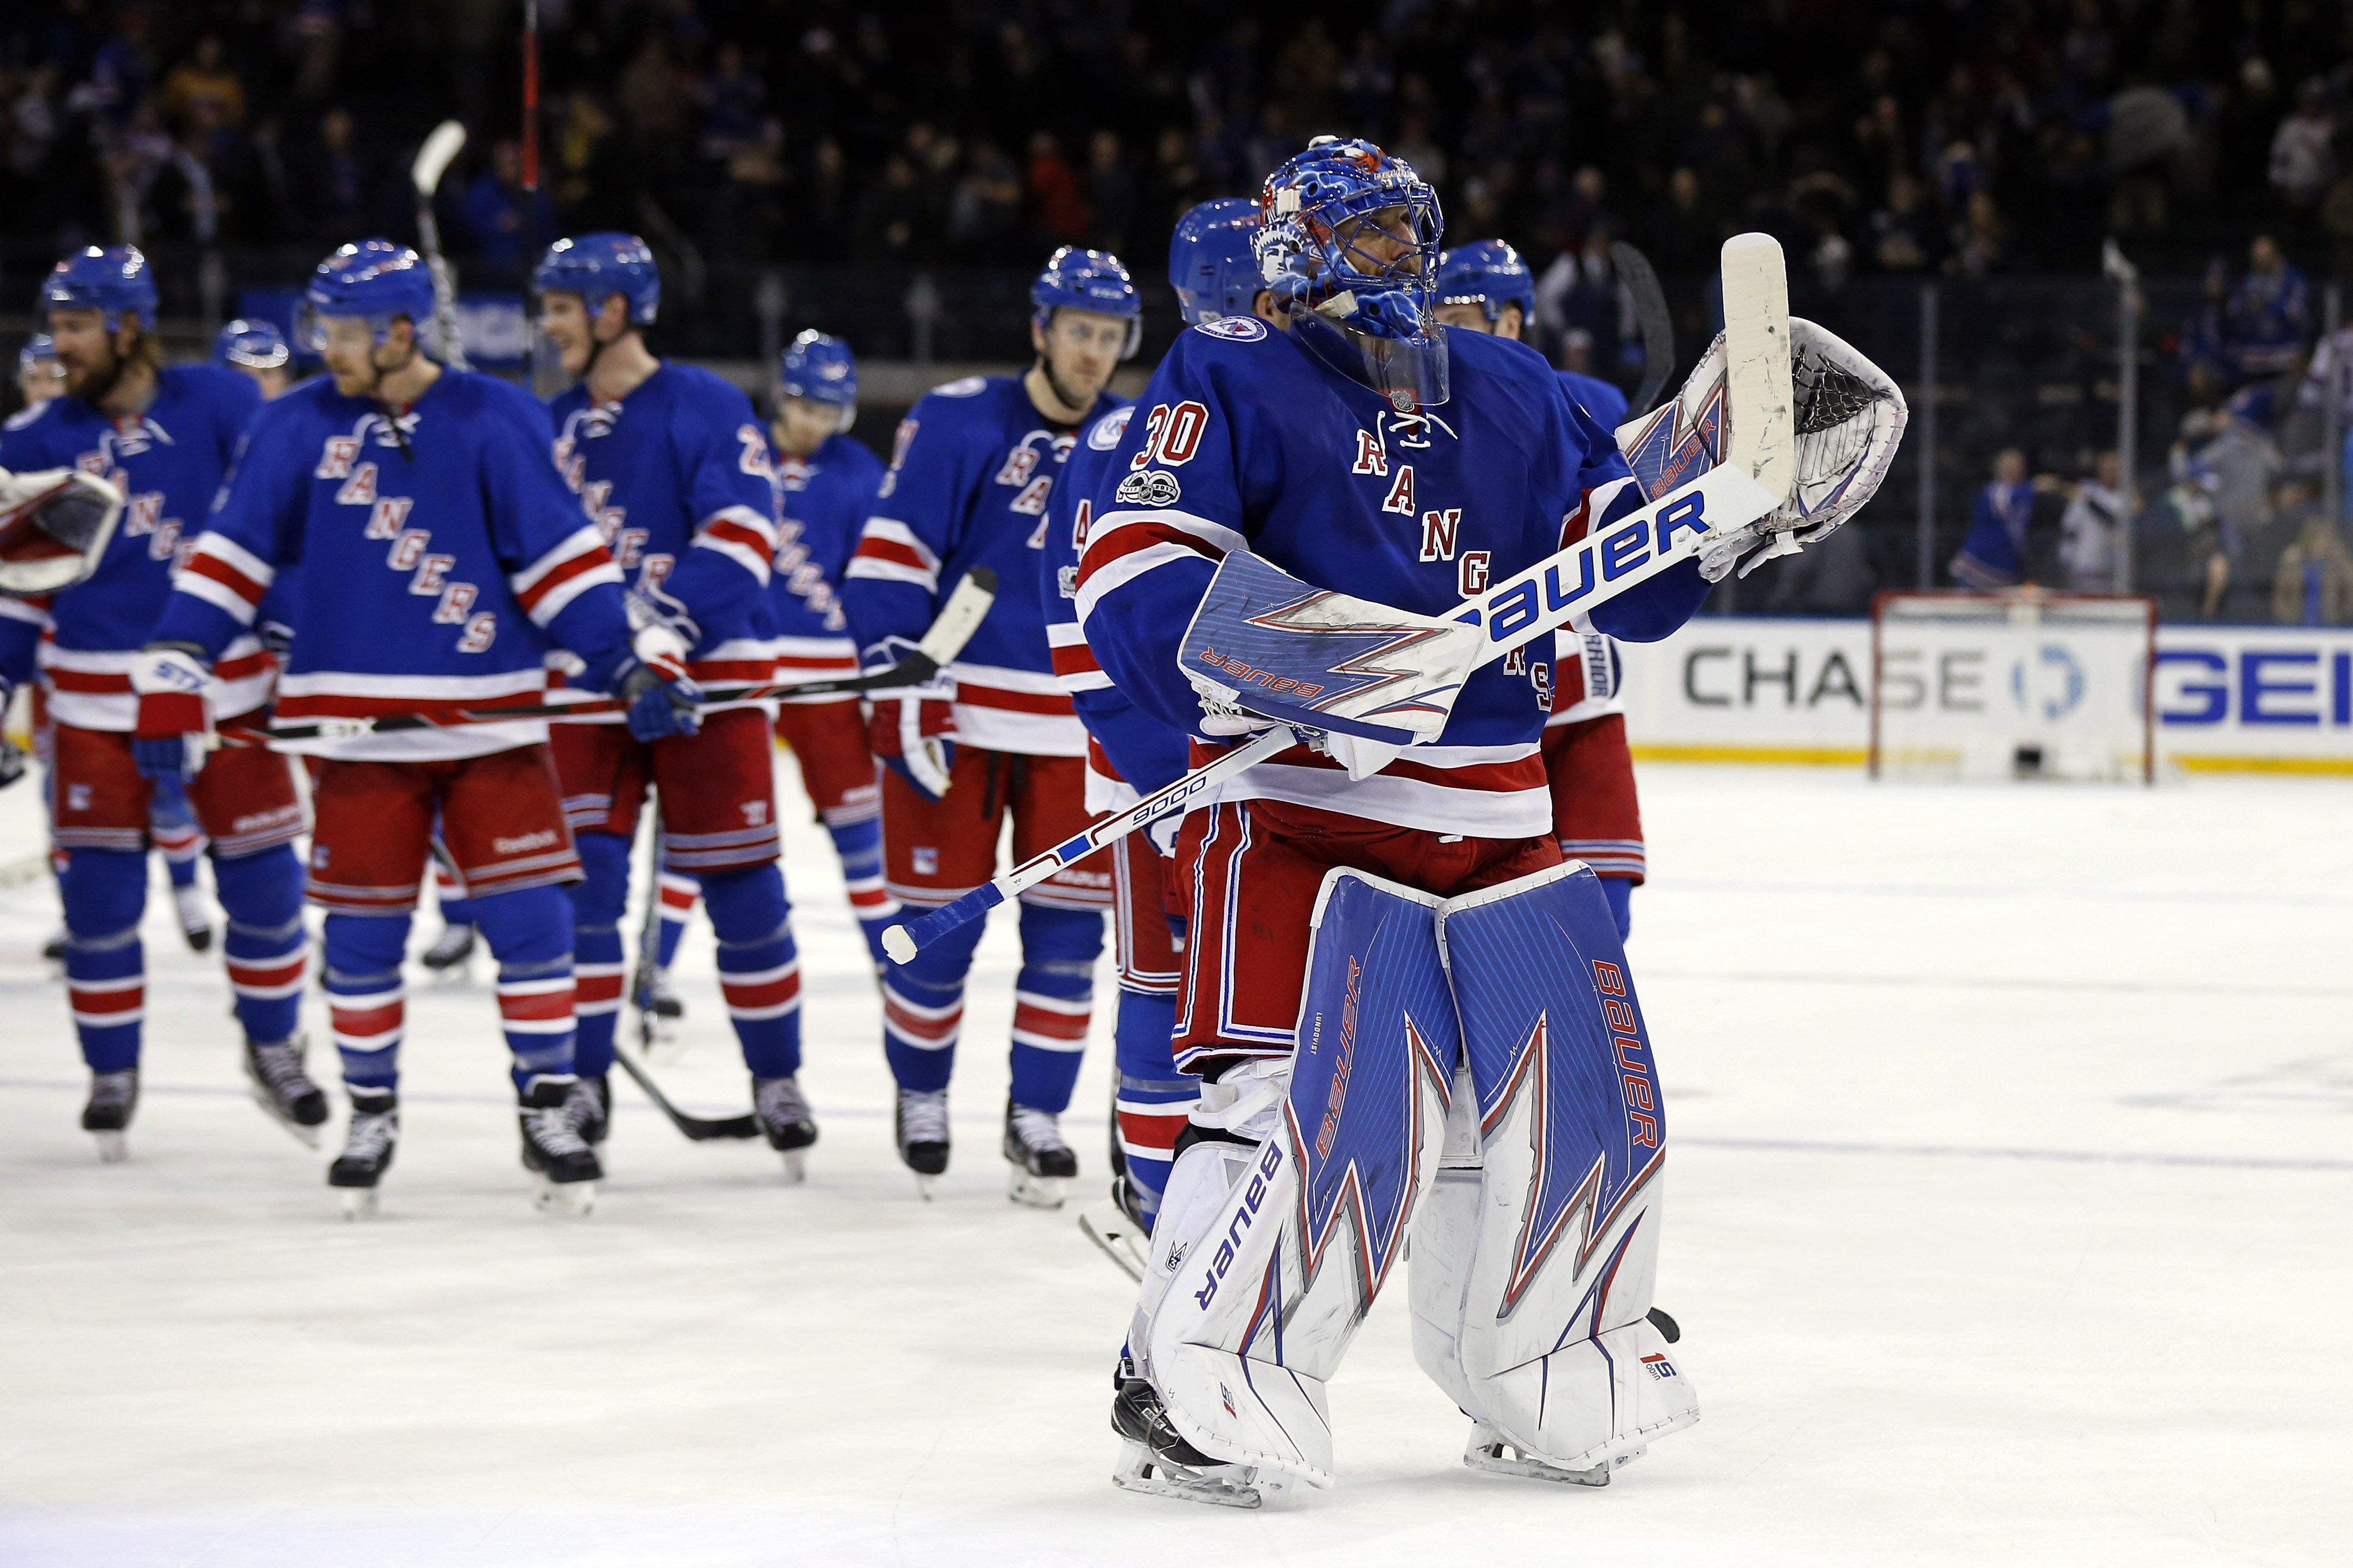 New York Rangers Best Games To Watch In Our Recent History